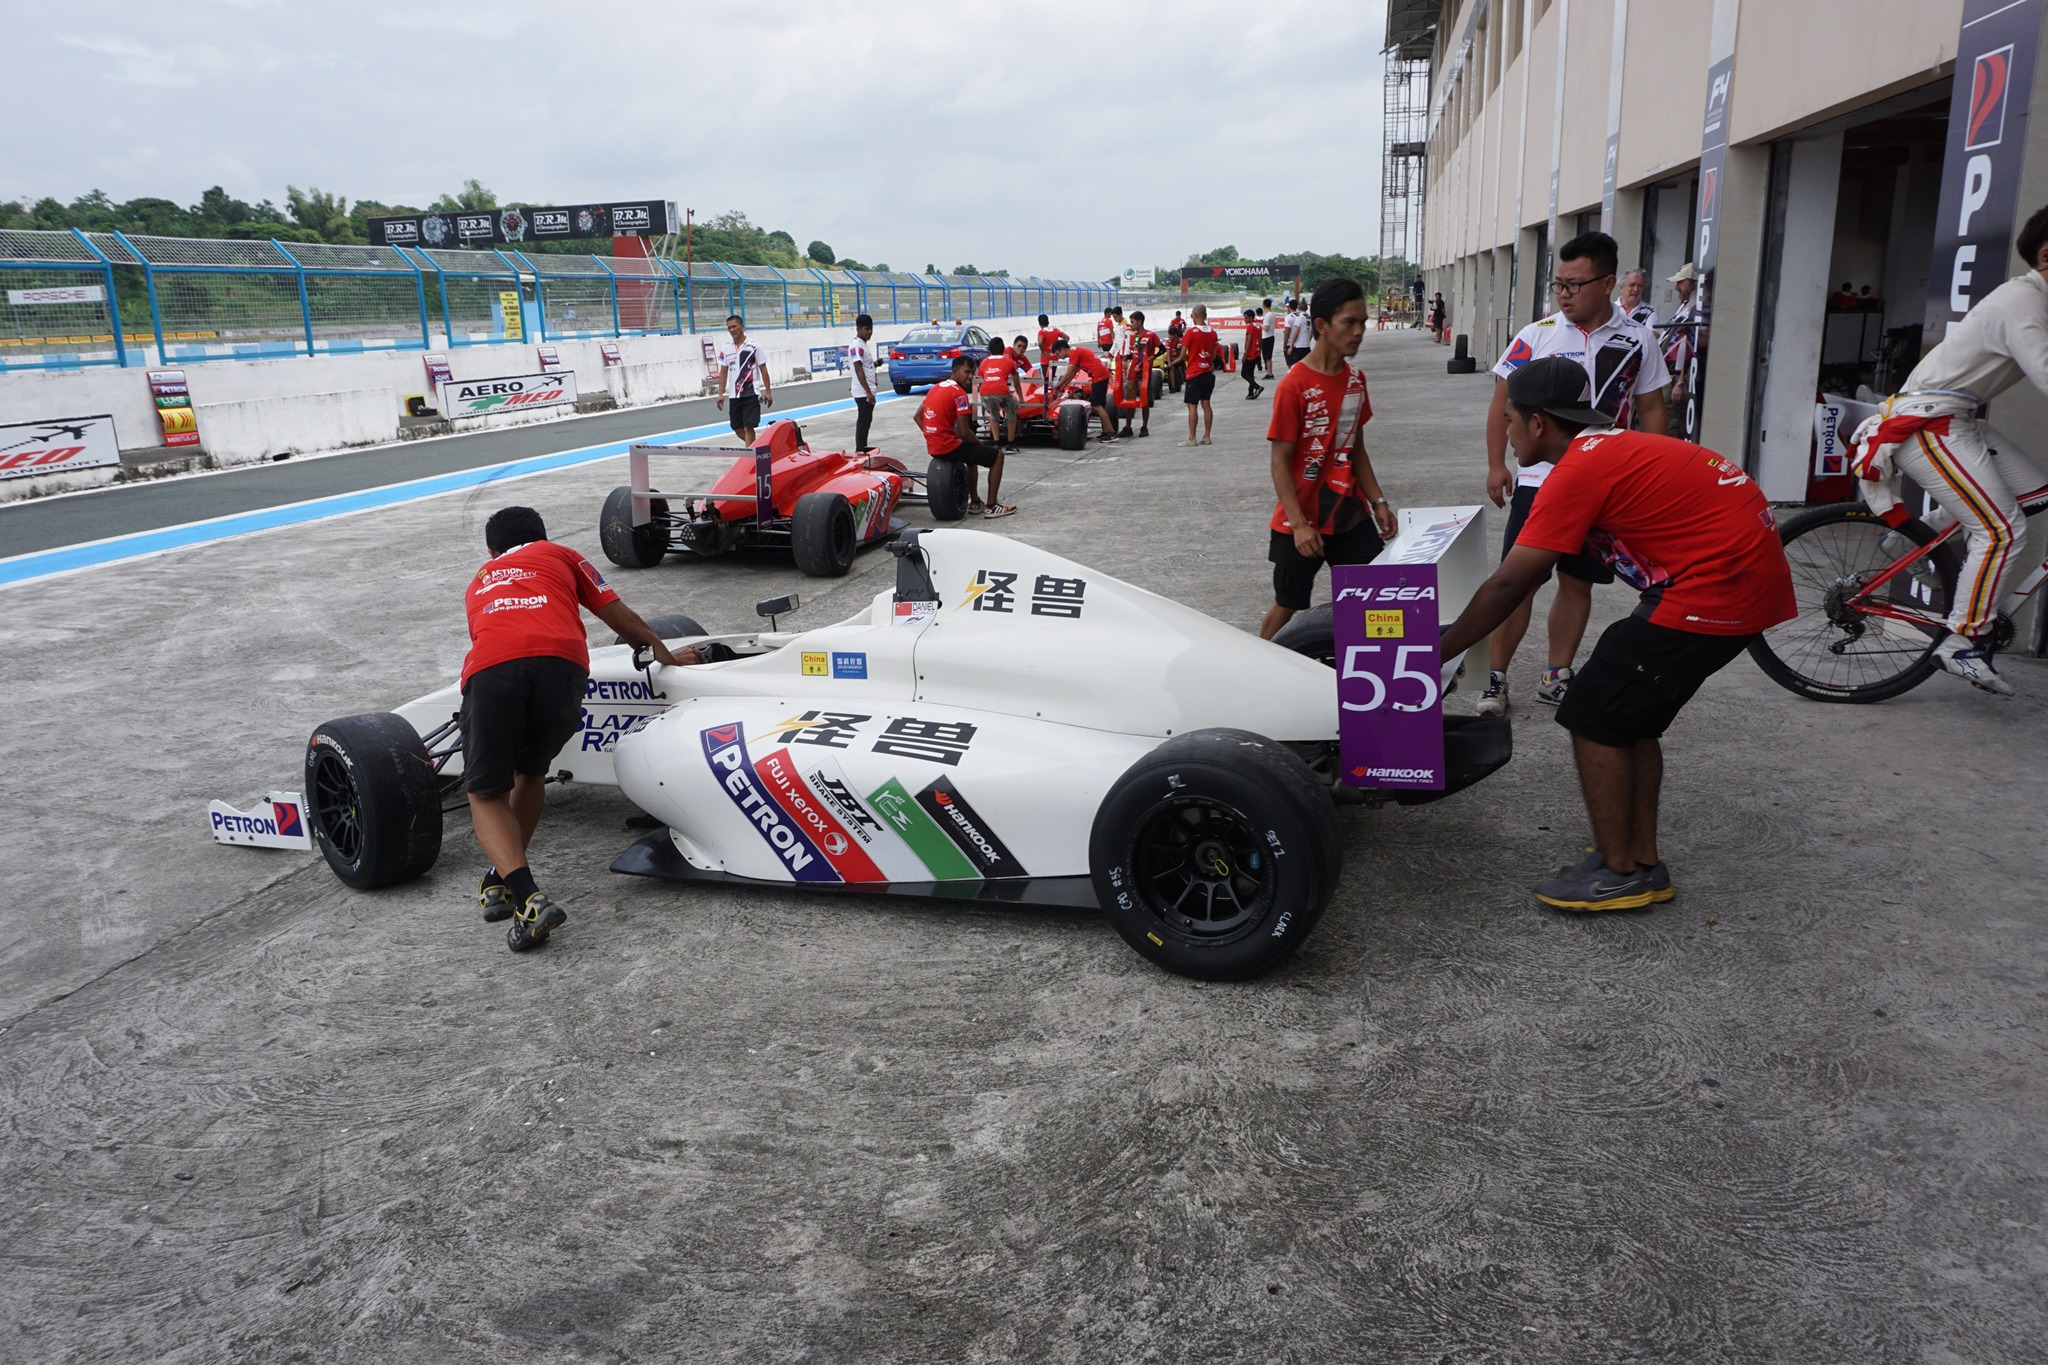 Southeast Big Boys Toys : Formula at clark international speedway pinoy guy guide